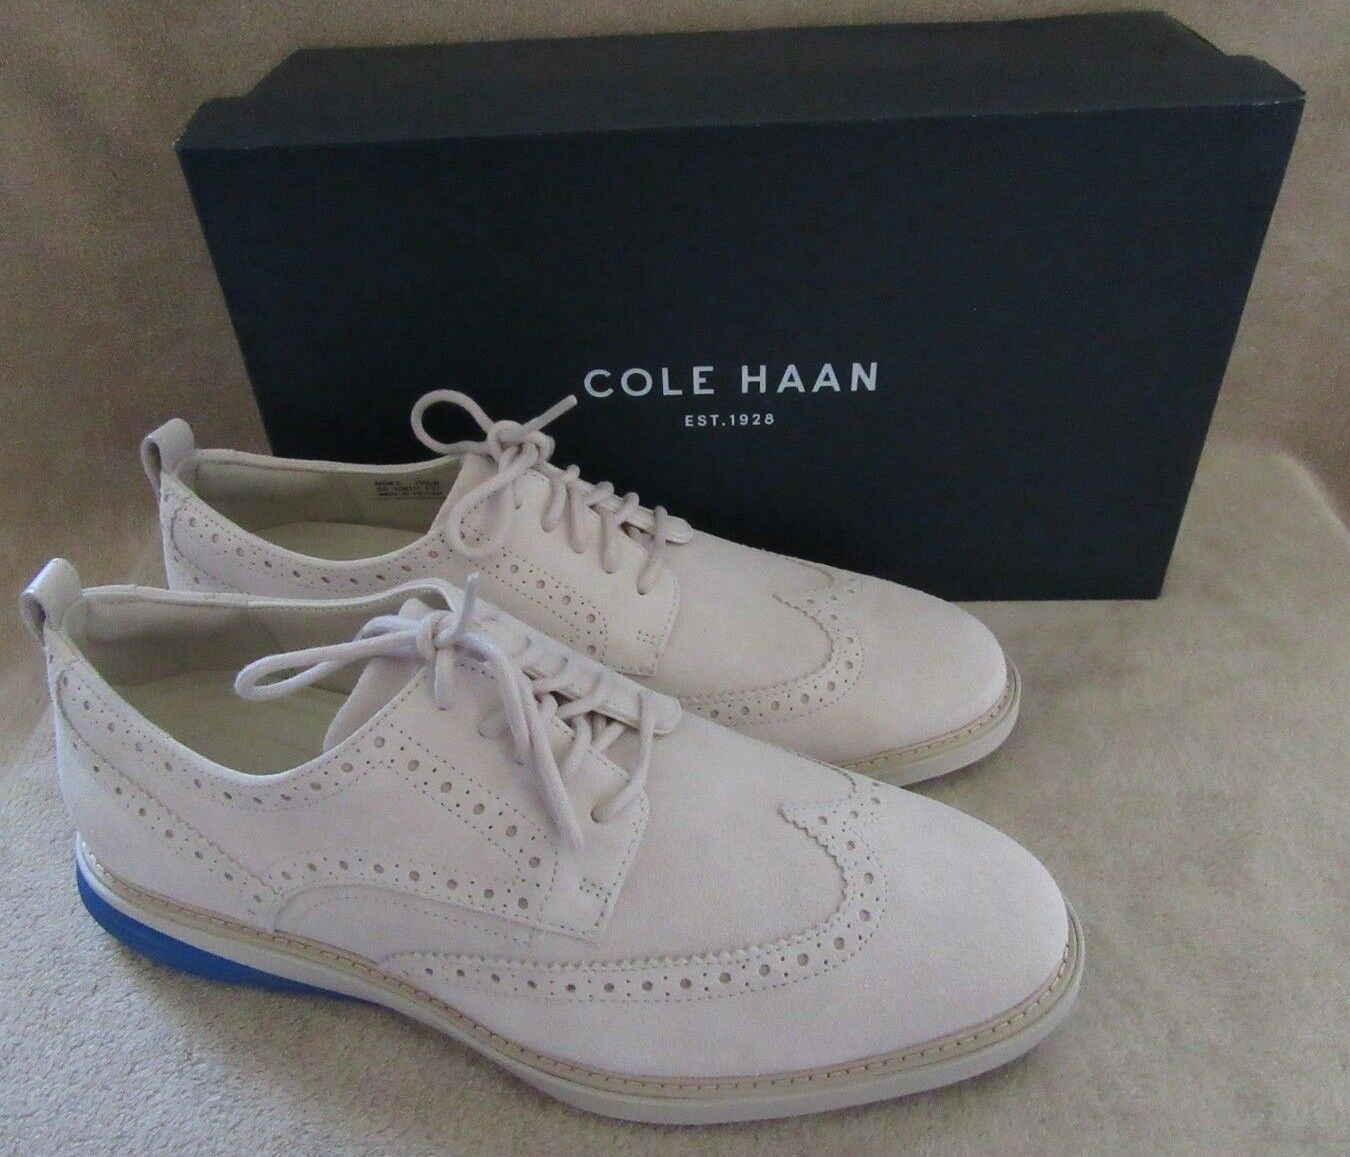 COLE HAAN C26311 Uomo Grand Evolution Pelle Lace Up  Shoes   10.5 NWB